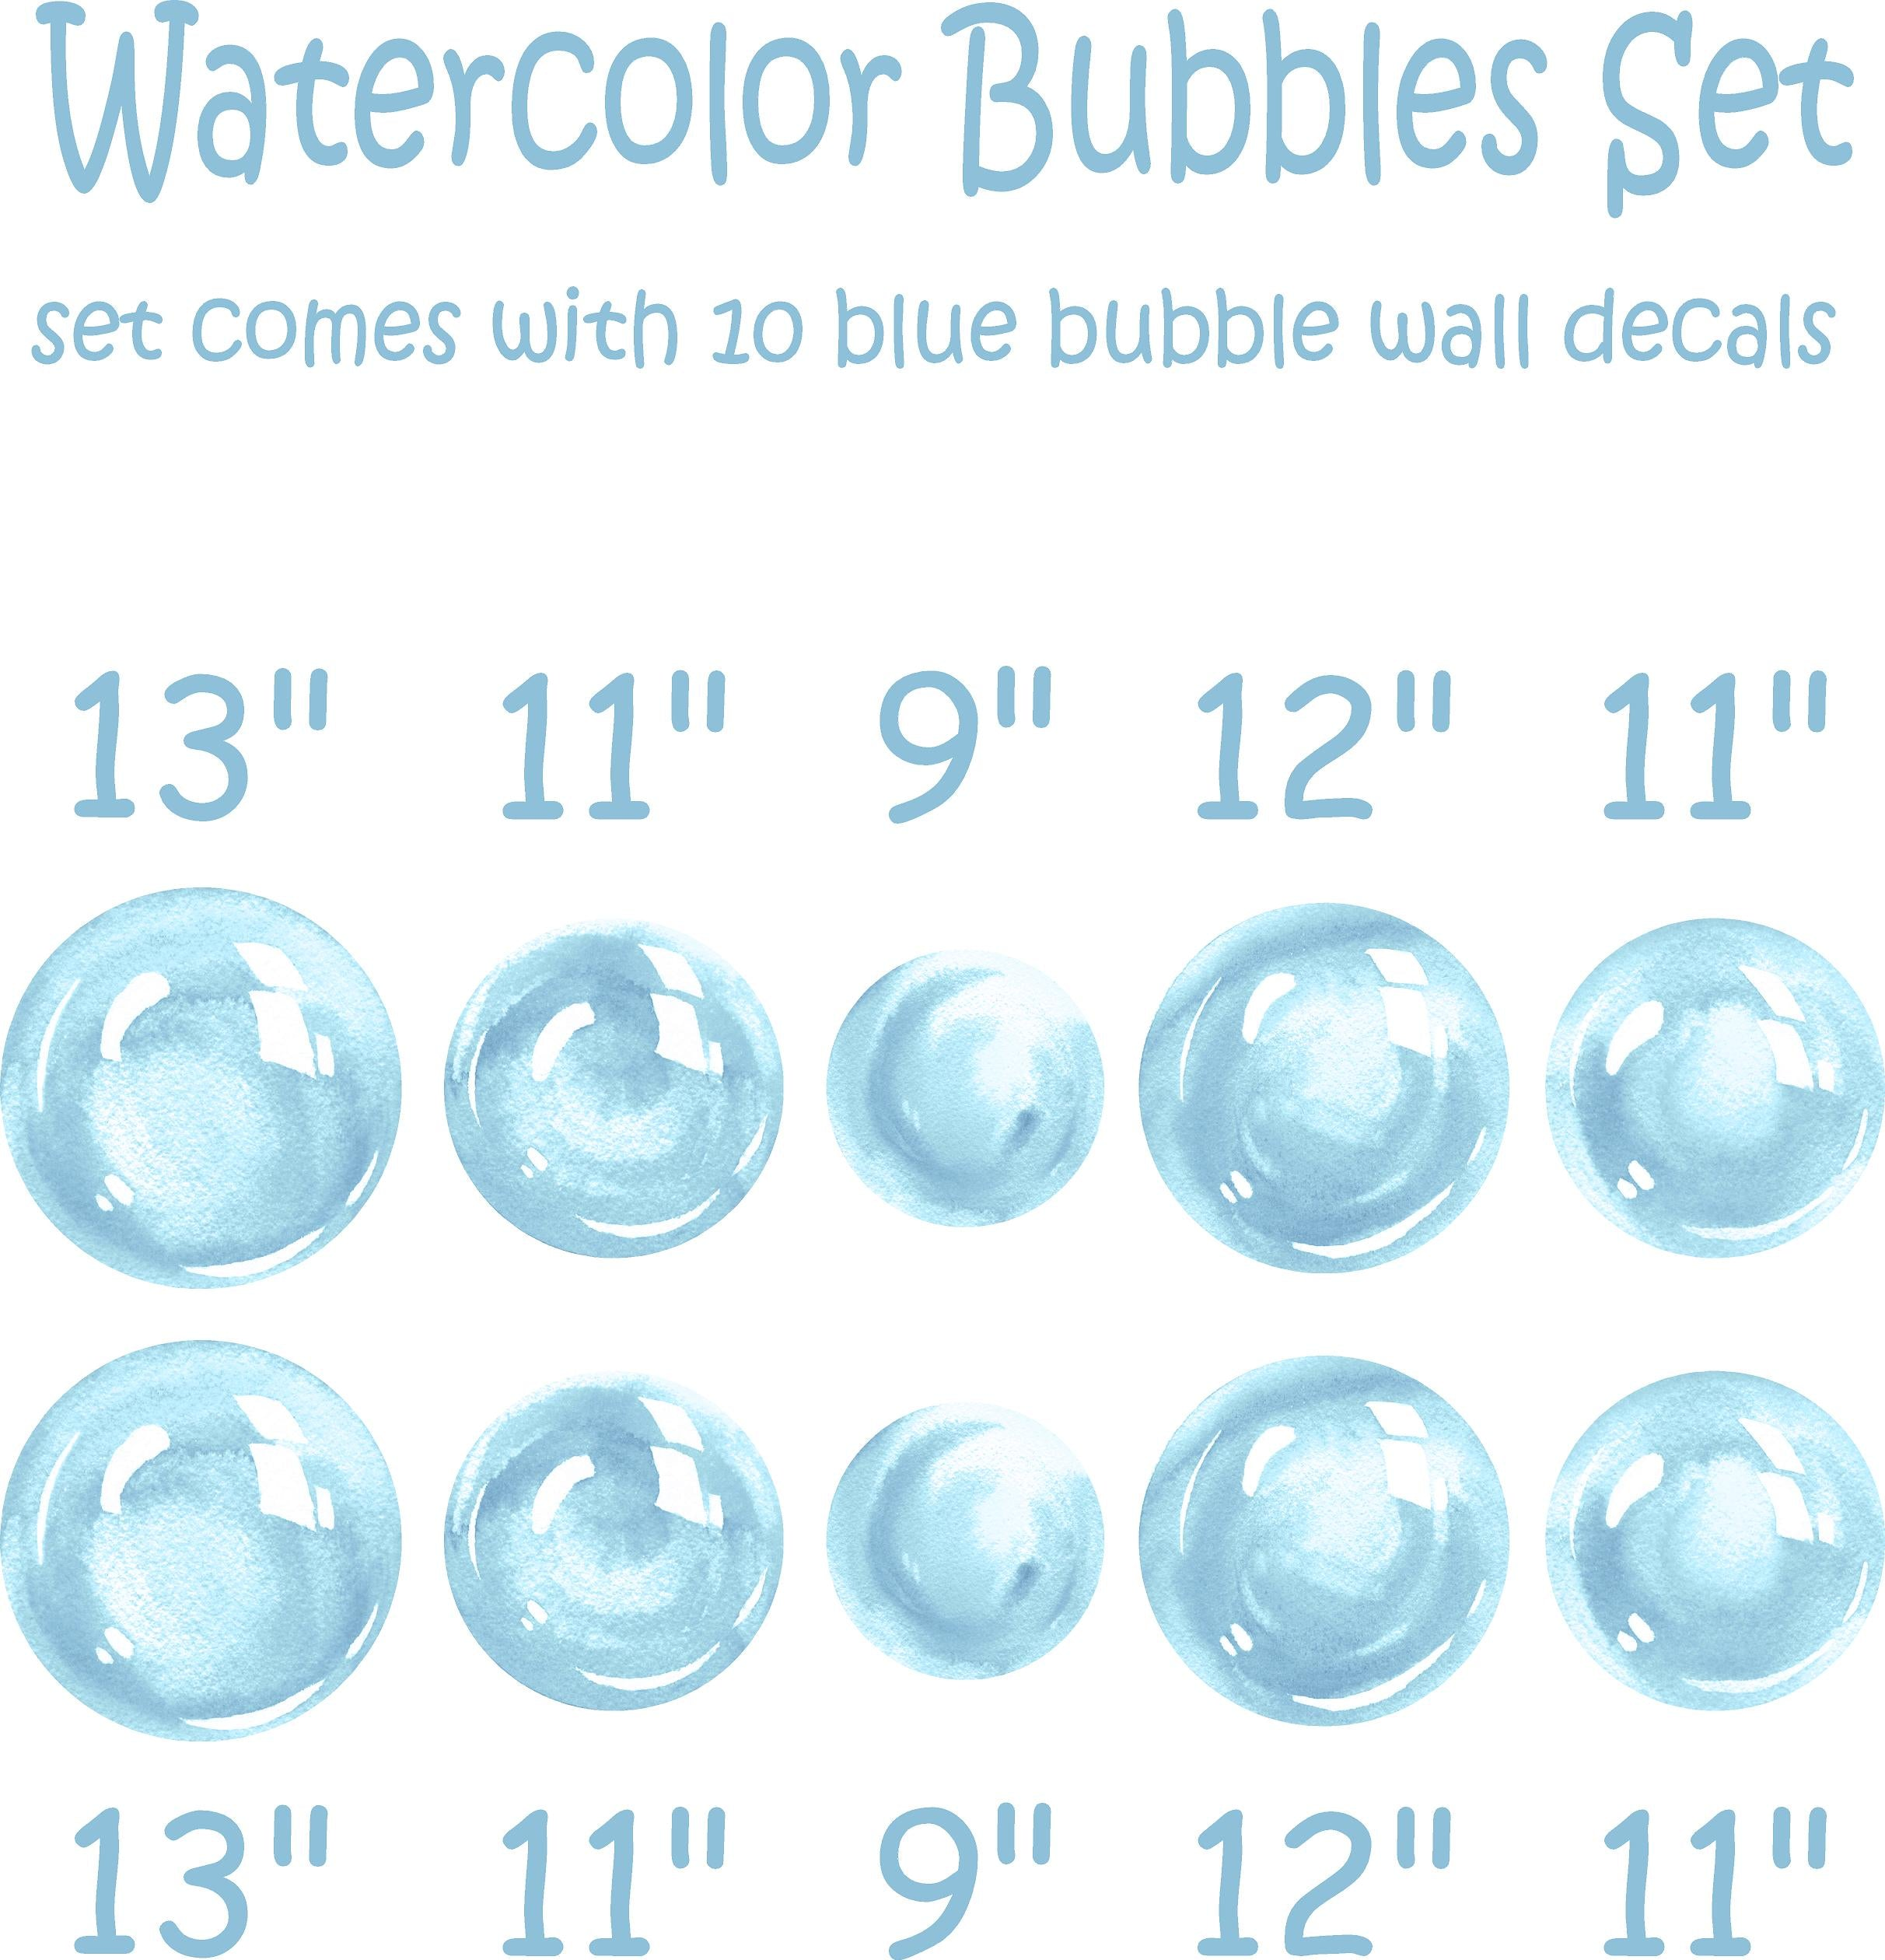 Watercolor Blue Bubbles Wall Decal Set Bubbles Wall Stickers Wall Art Nursery Decor Removable Fabric Vinyl Wall Stickers SIZE LARGE | DecalBaby